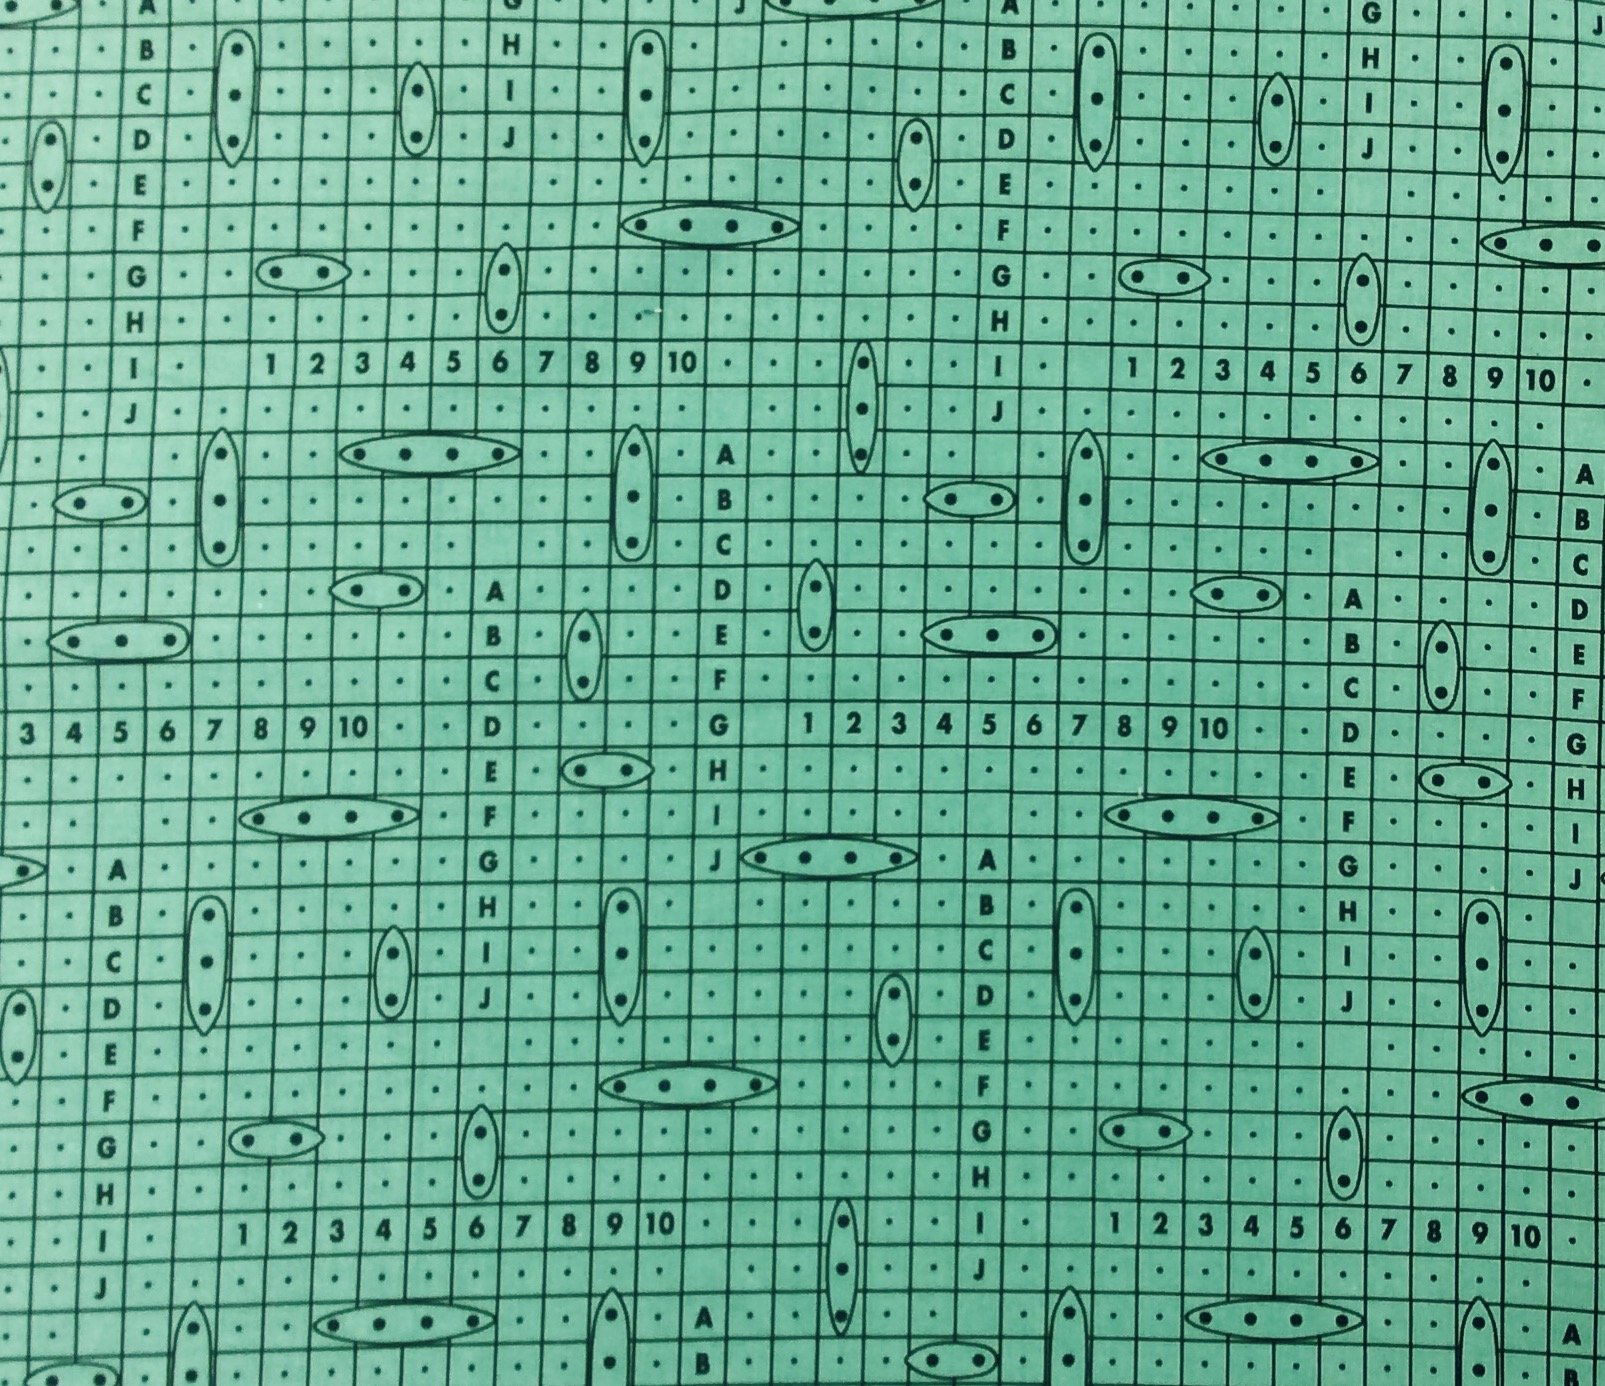 You Sunk My Battleship! Hasbro Classic Board Game Retro Cotton Quilt Fabric FT175